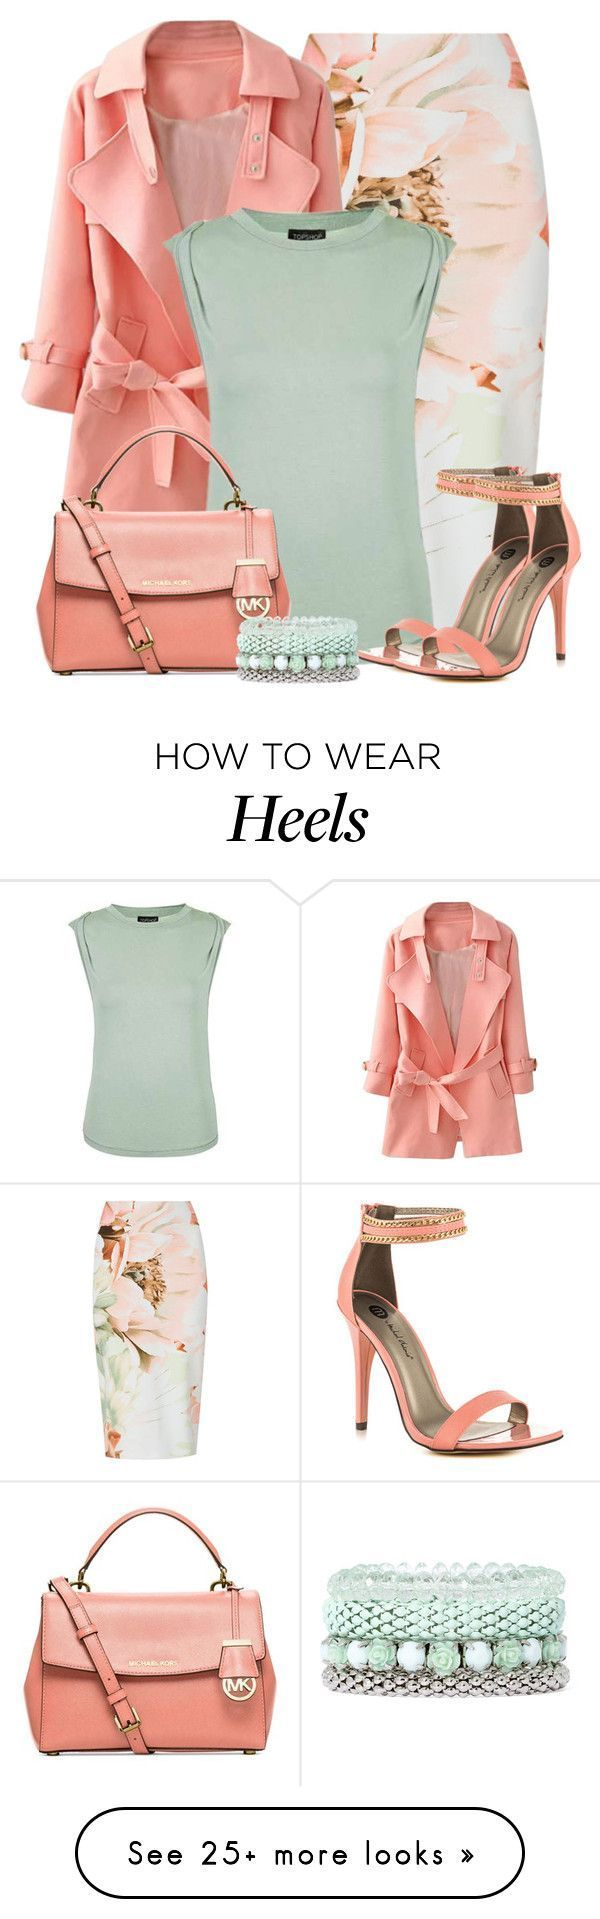 """Untitled #5852"" by cassandra-cafone-wright on Polyvore featuring Topshop, Michael Kors, Michael Antonio and Decree"